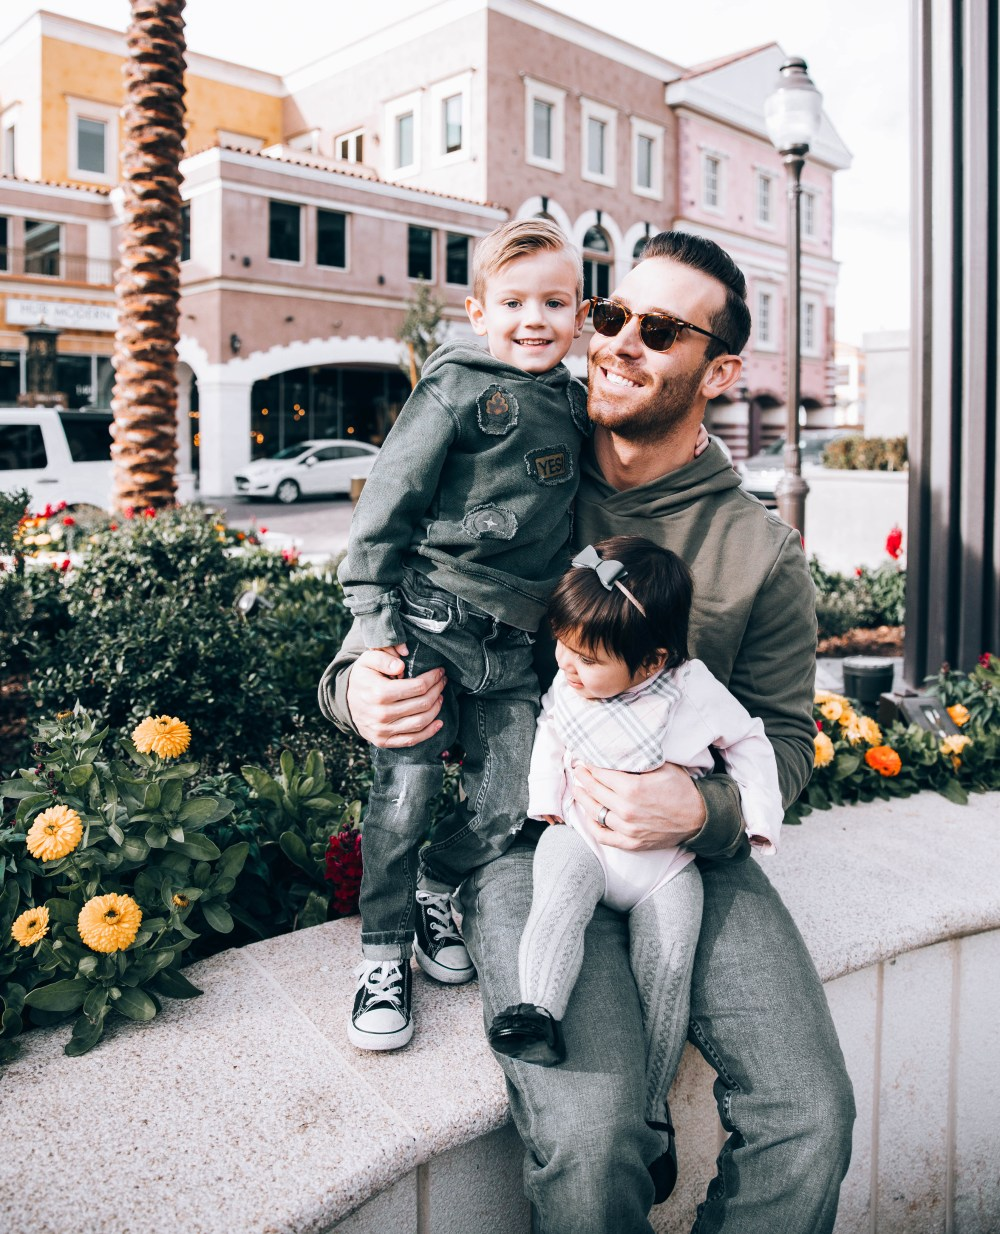 Update on our life and outfit details for everyone in the fam! Everyone needs a good pair of denim and Nordstrom has it covered! #trulydestiny #nordstromoutfits #familyphotos #denim